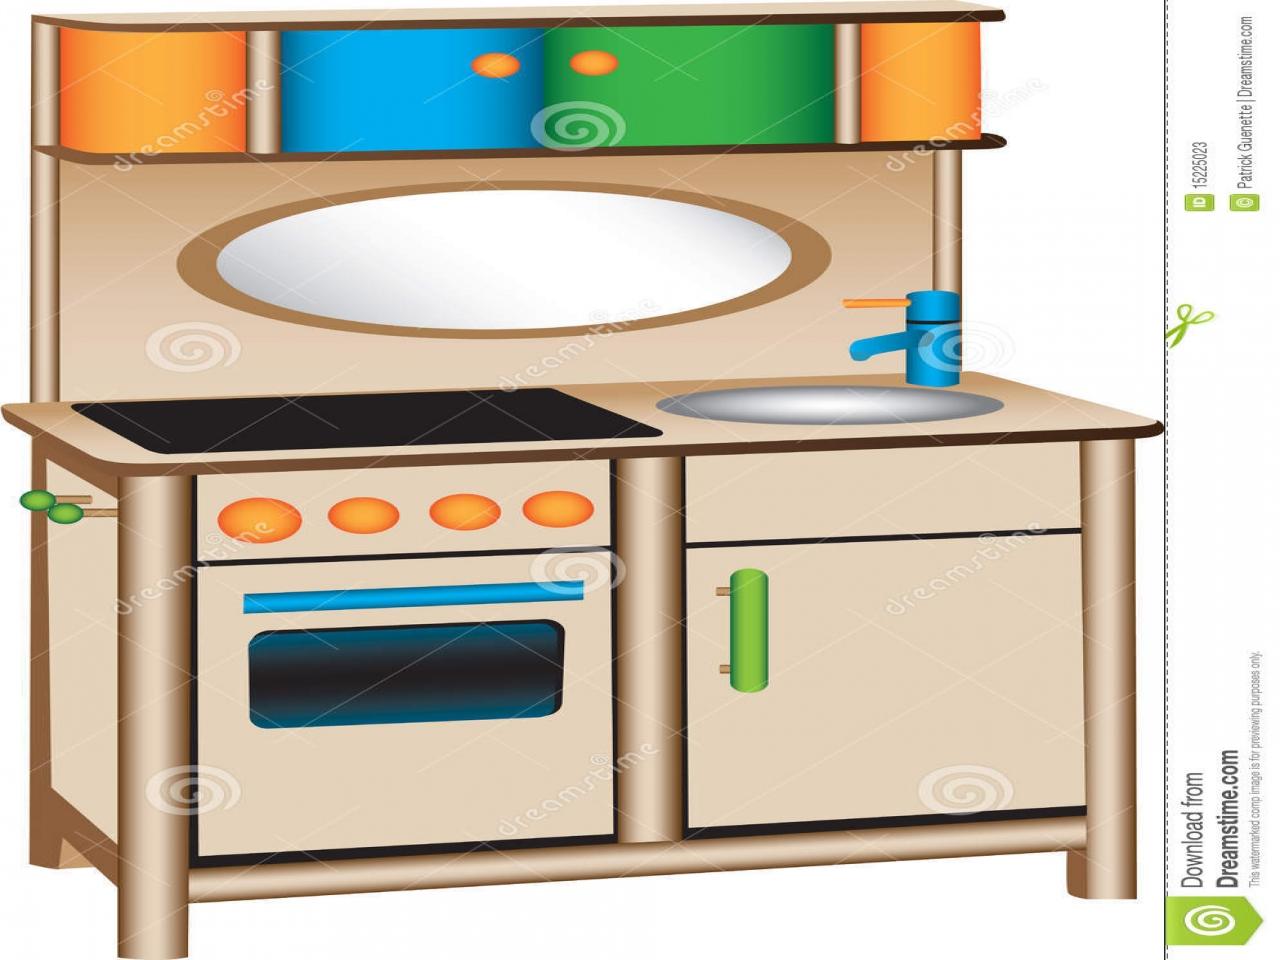 Dramatic play center free. Cookbook clipart toy kitchen